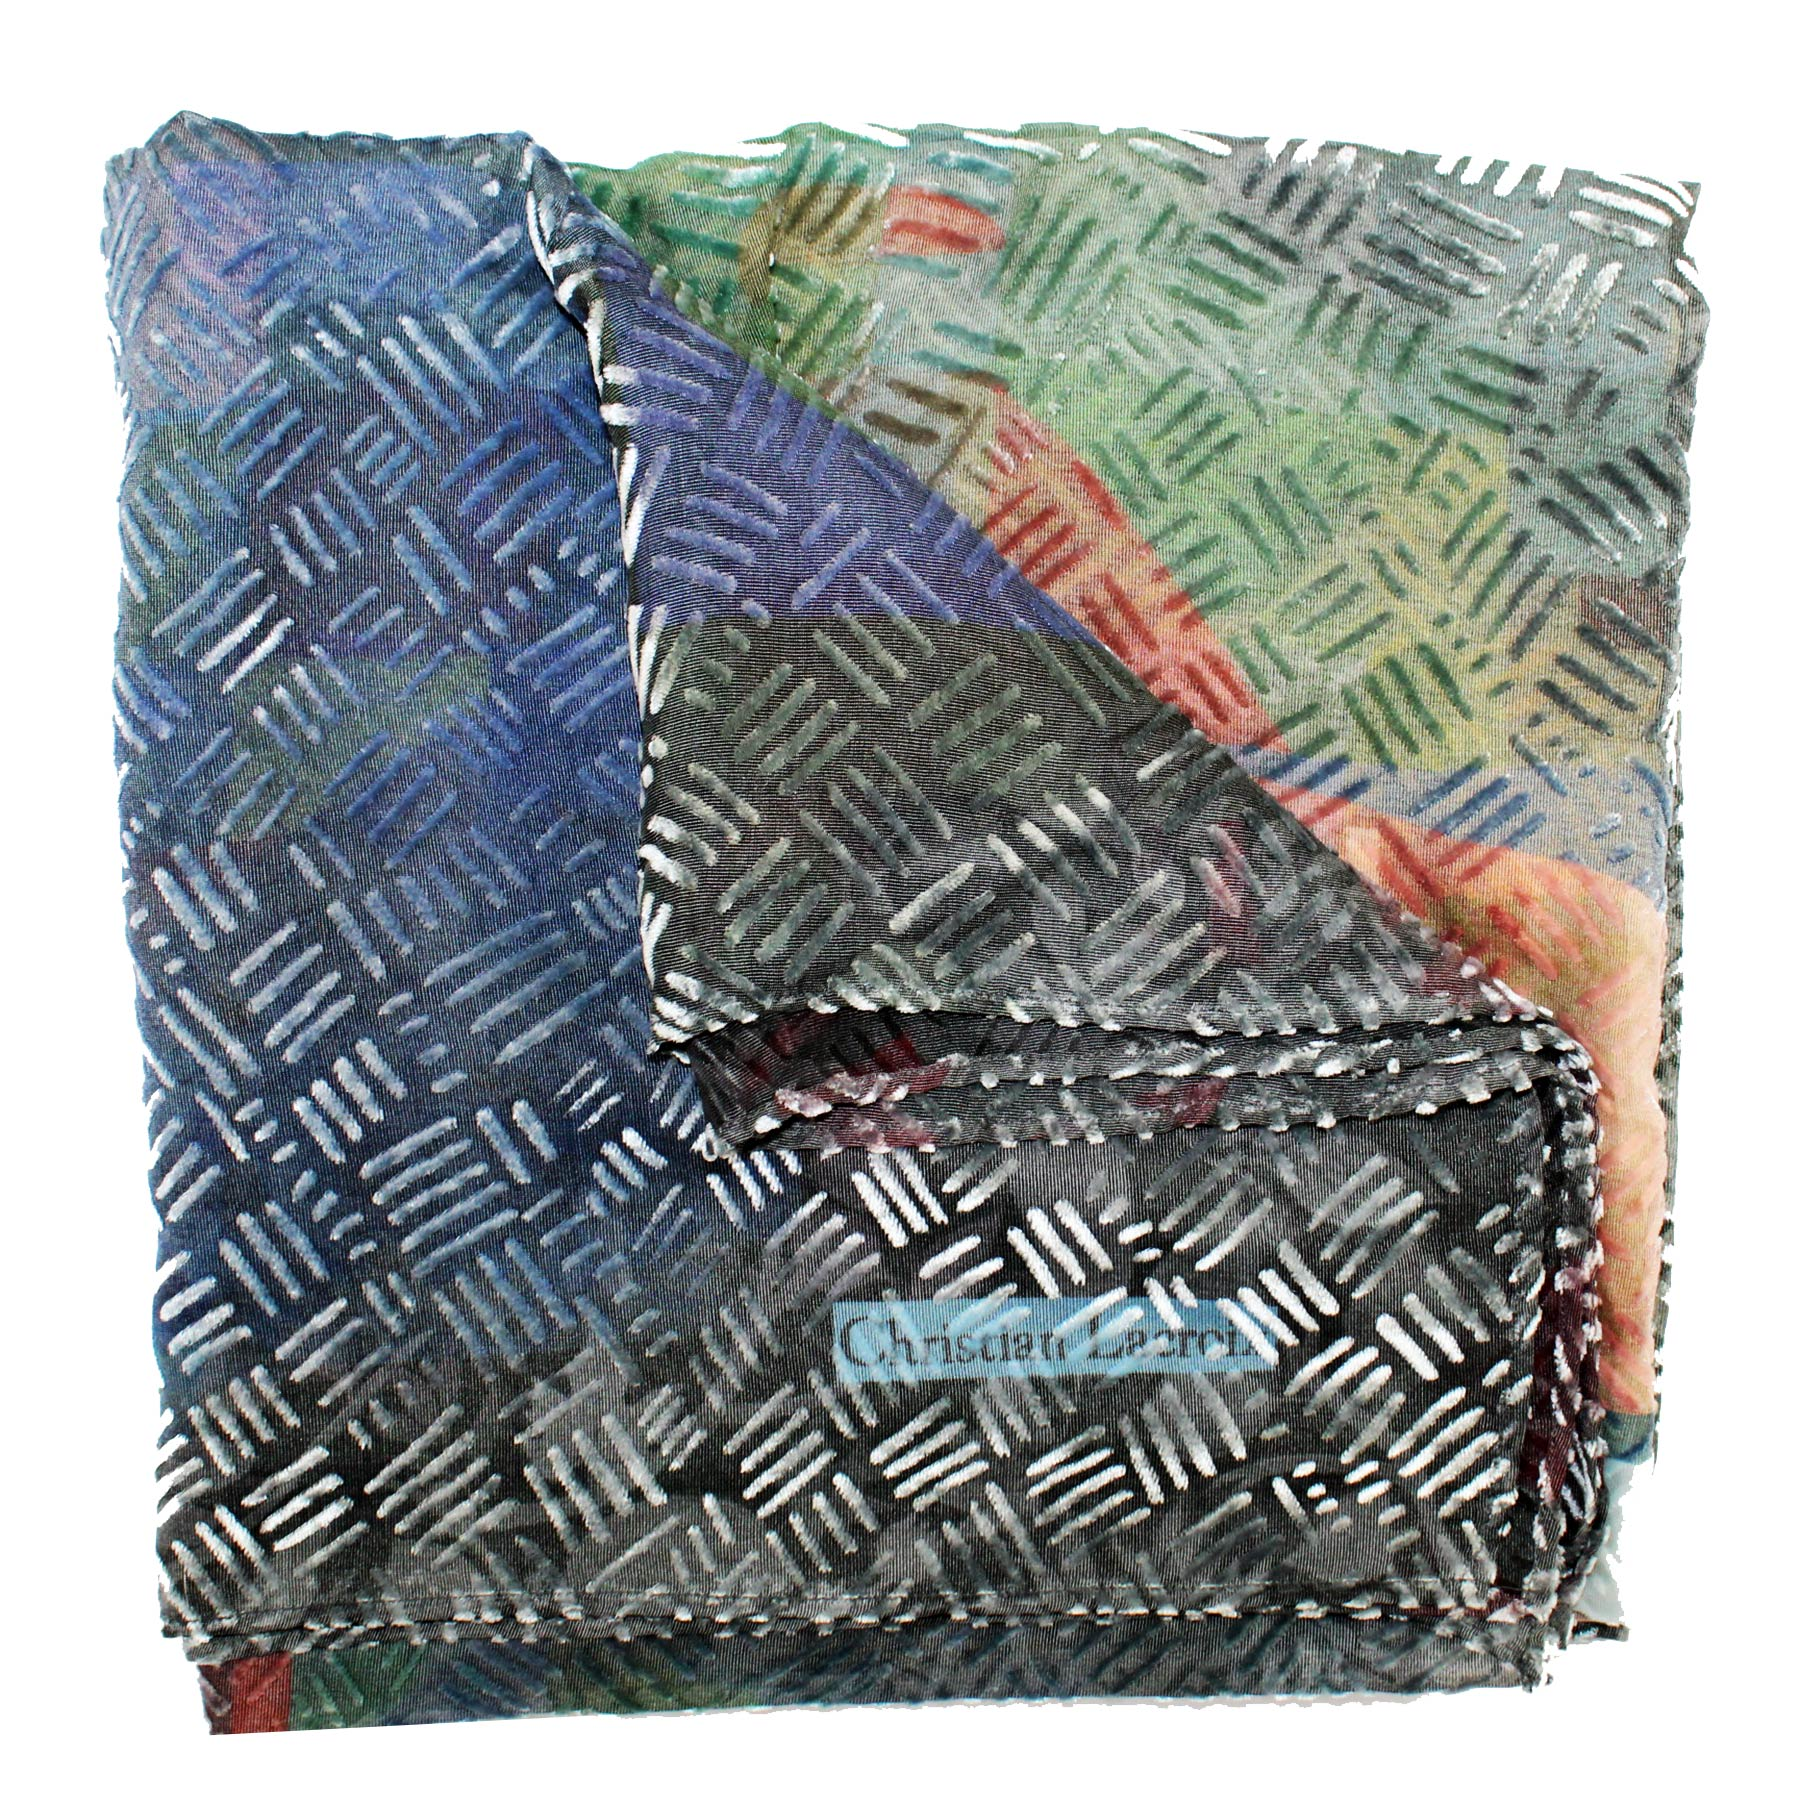 Christian Lacroix Scarf Multi Color - Extra Large Square Scarf SALE